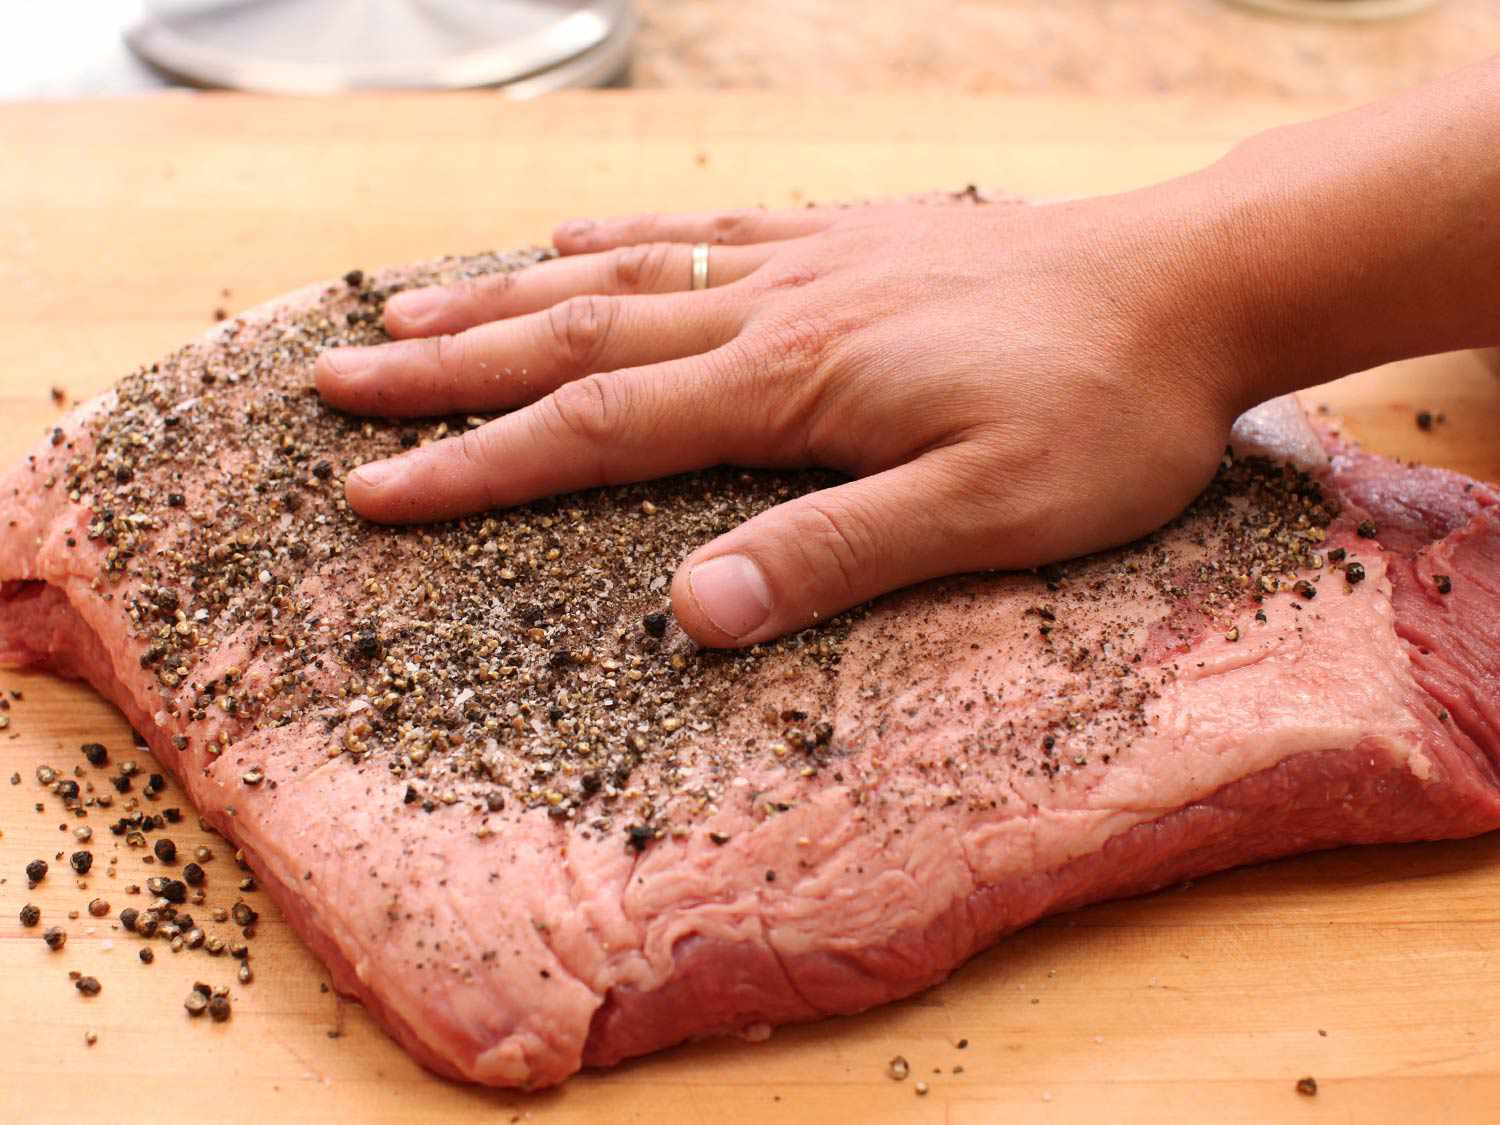 A hand rubbing coarsely ground peppercorns over a slab of brisket